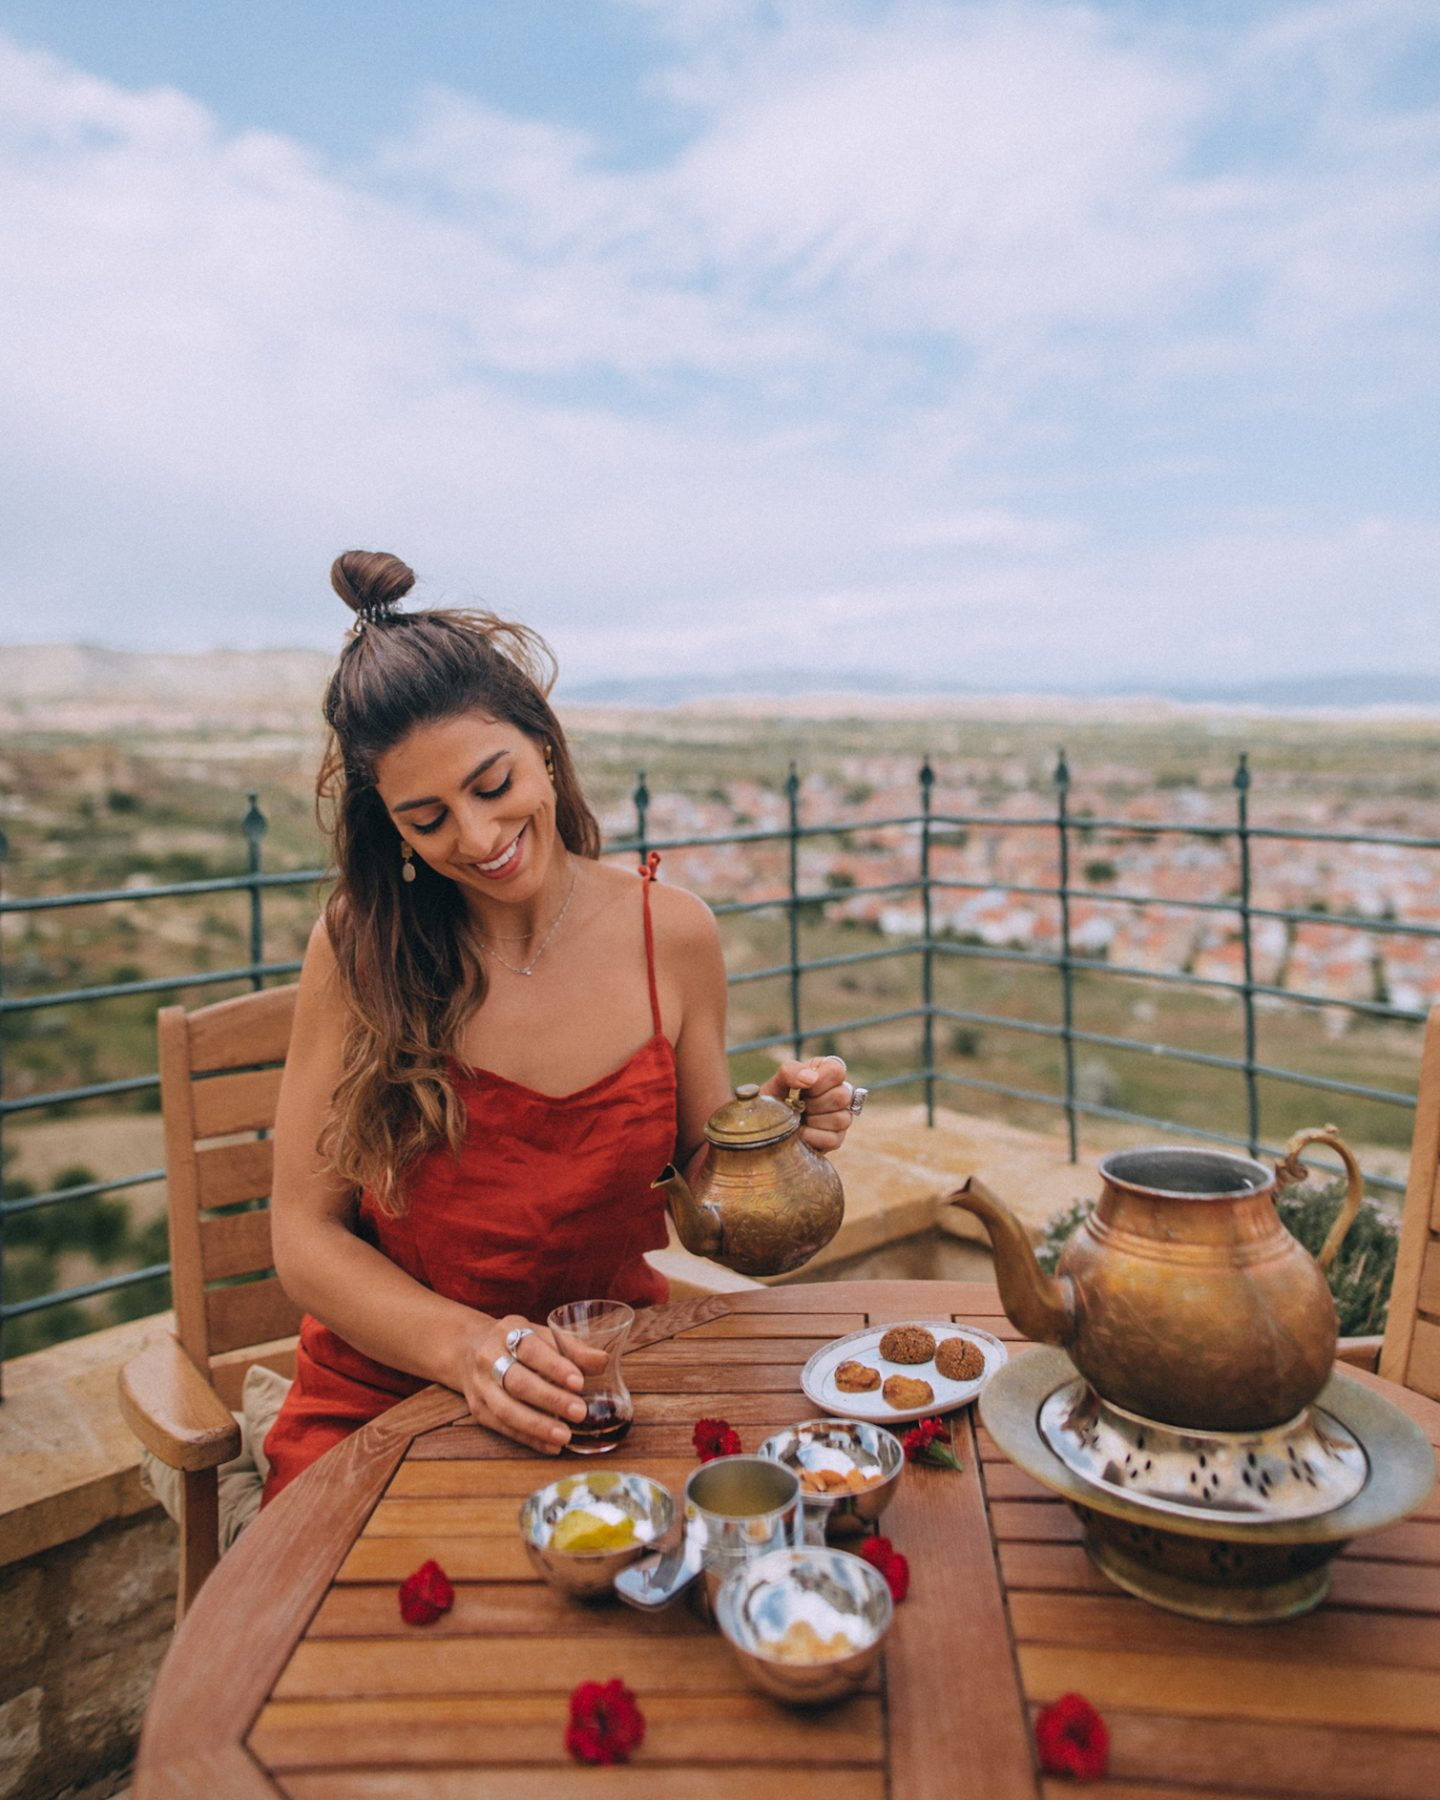 Enjoying a meal in Cappadocia